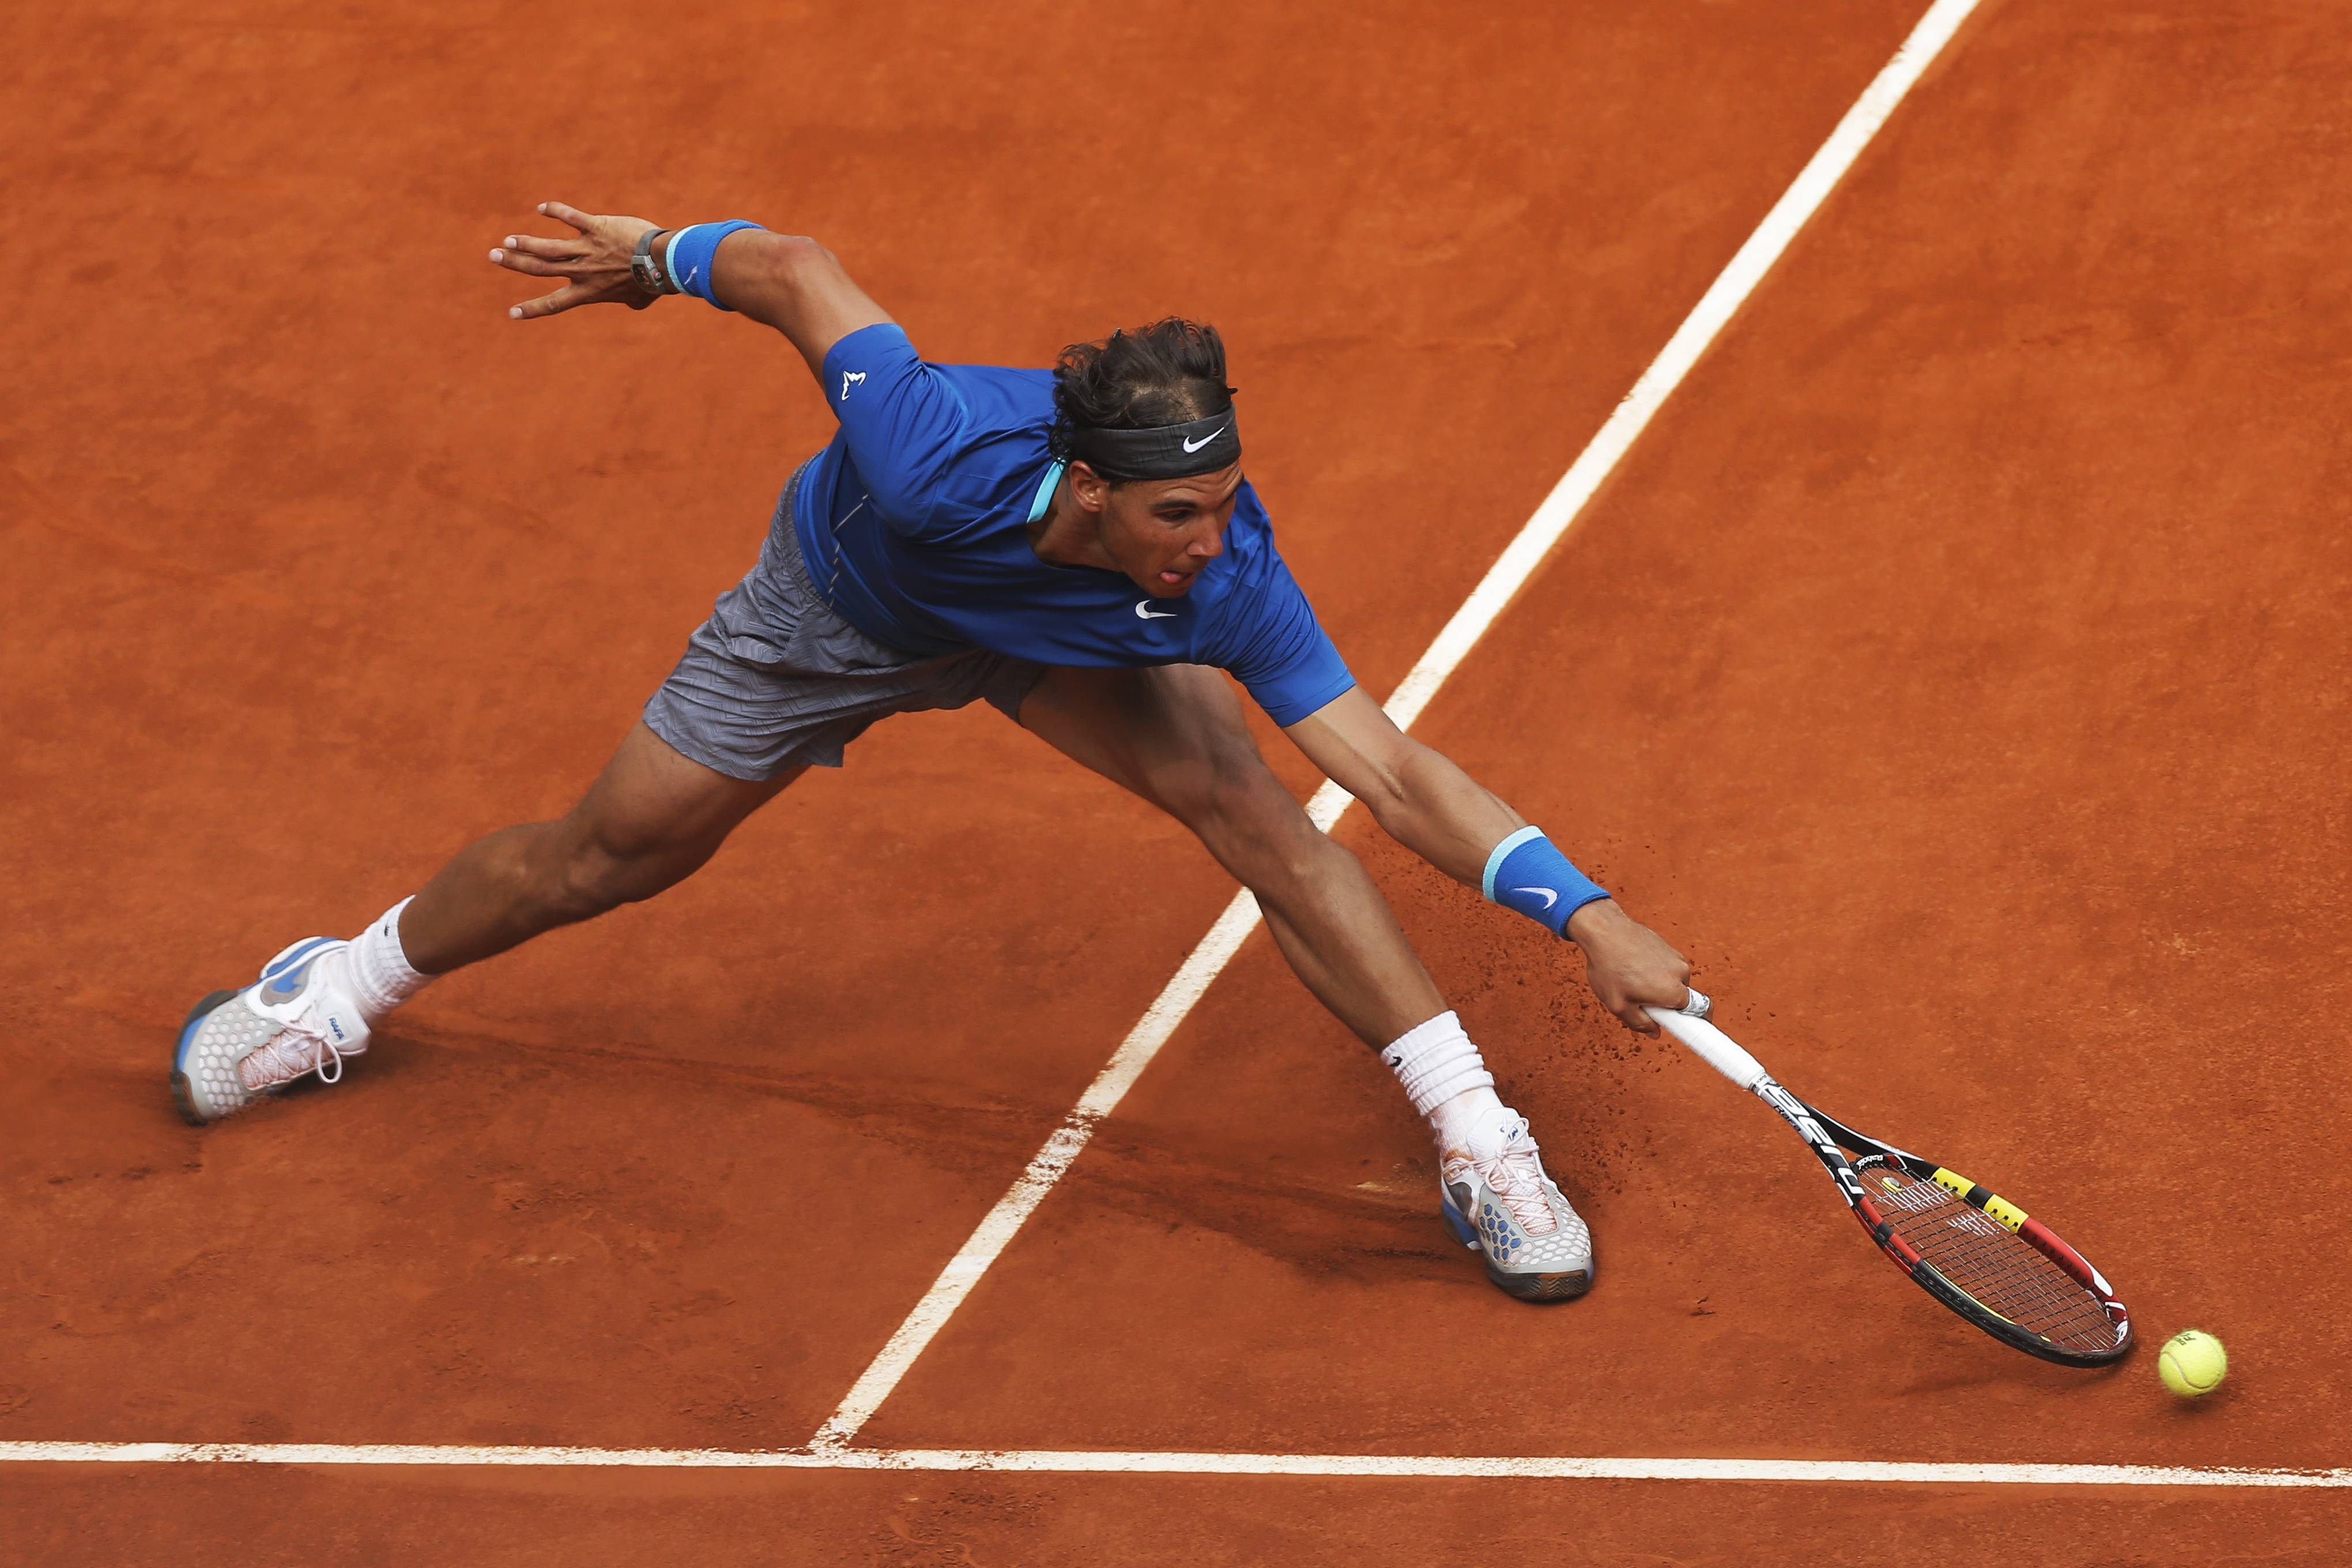 Rafael Nadal from Spain attempts to return the ball during a Madrid Open tennis tournament match against Juan Monaco from Argentina, in Madrid, Spain, Wednesday, May 7, 2014.